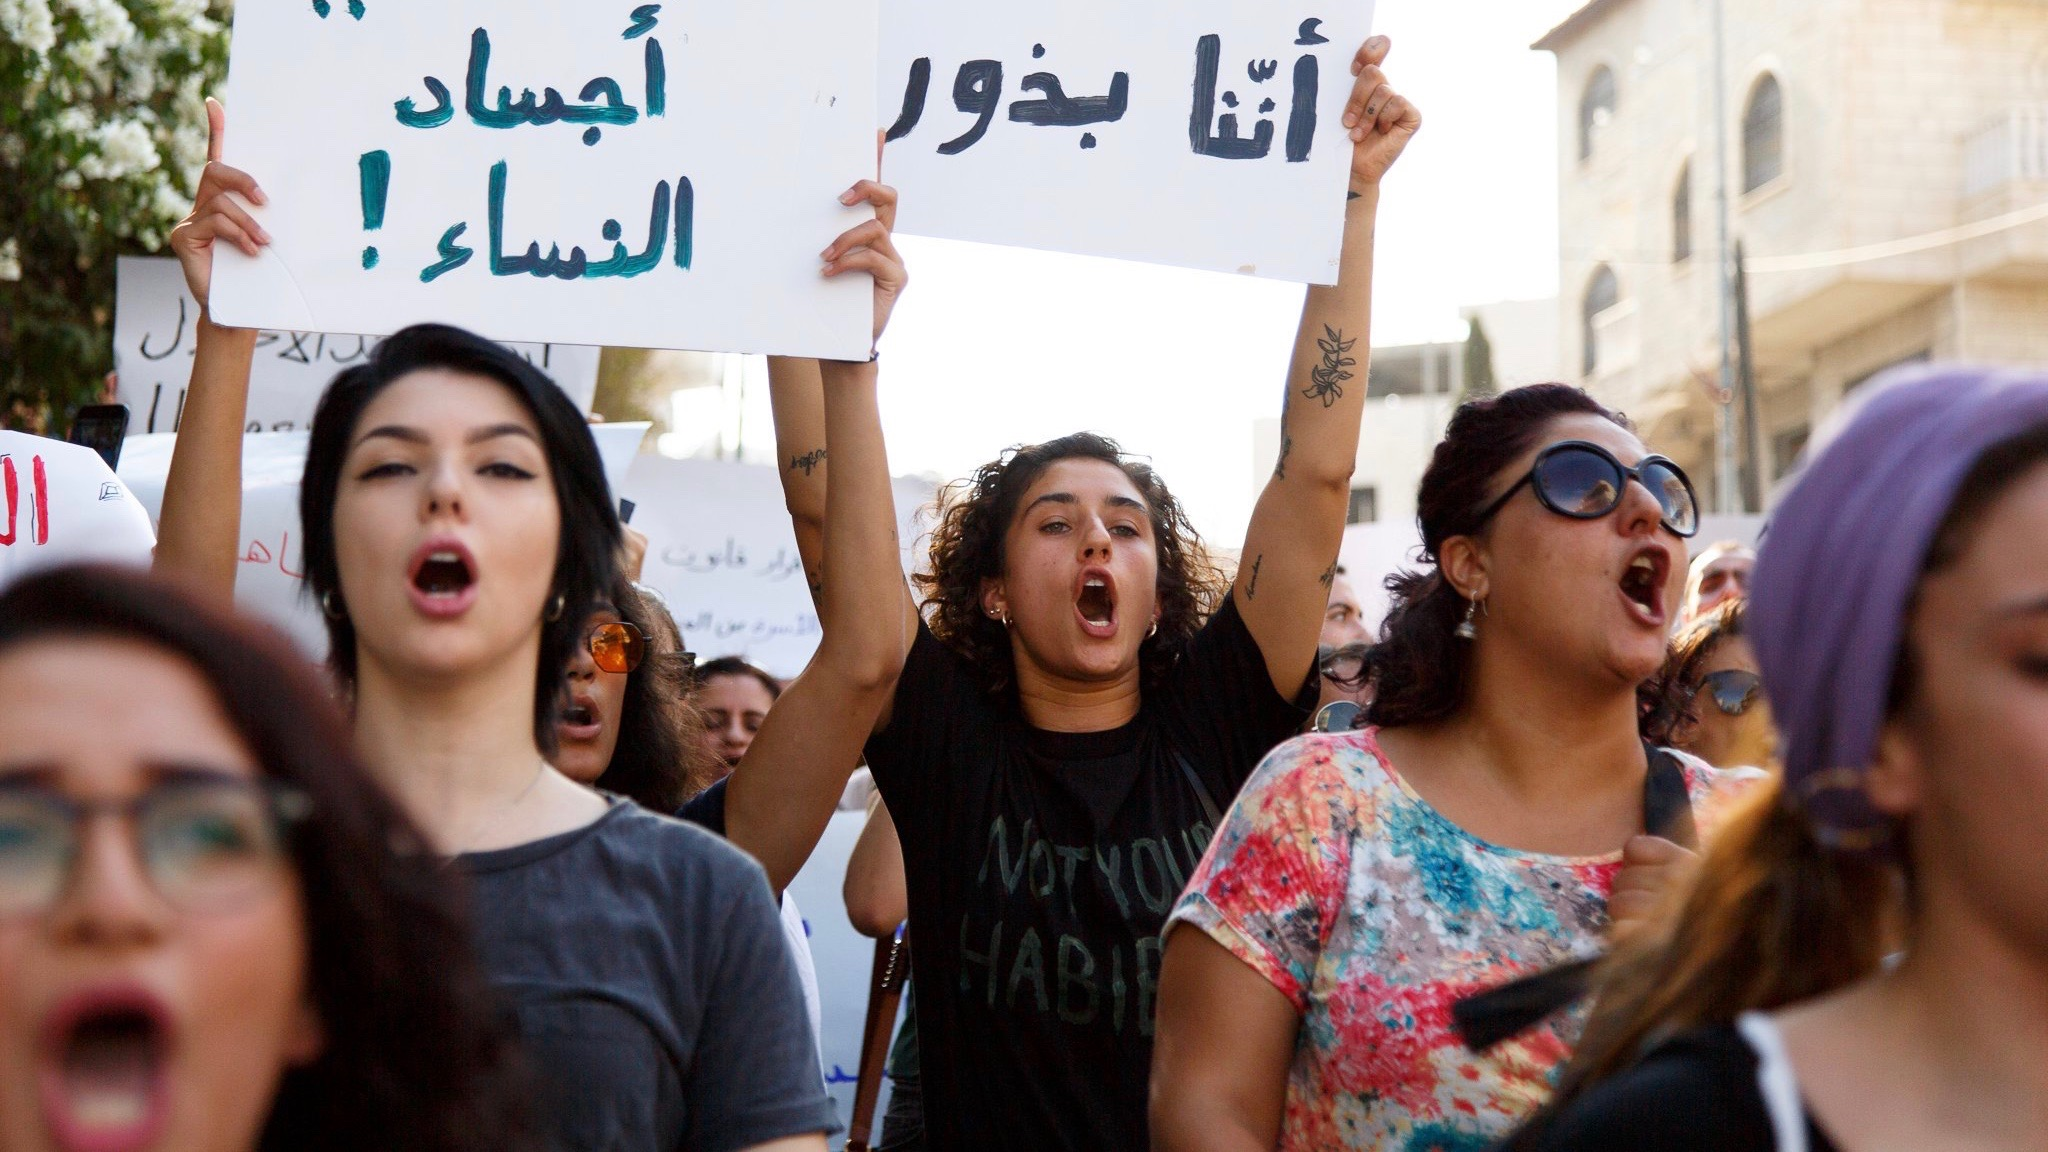 Palestinian women mobilized outside the prime minister's office in Ramallah after the killing of Israa Gharib to demand action be taken to stop violence against women.